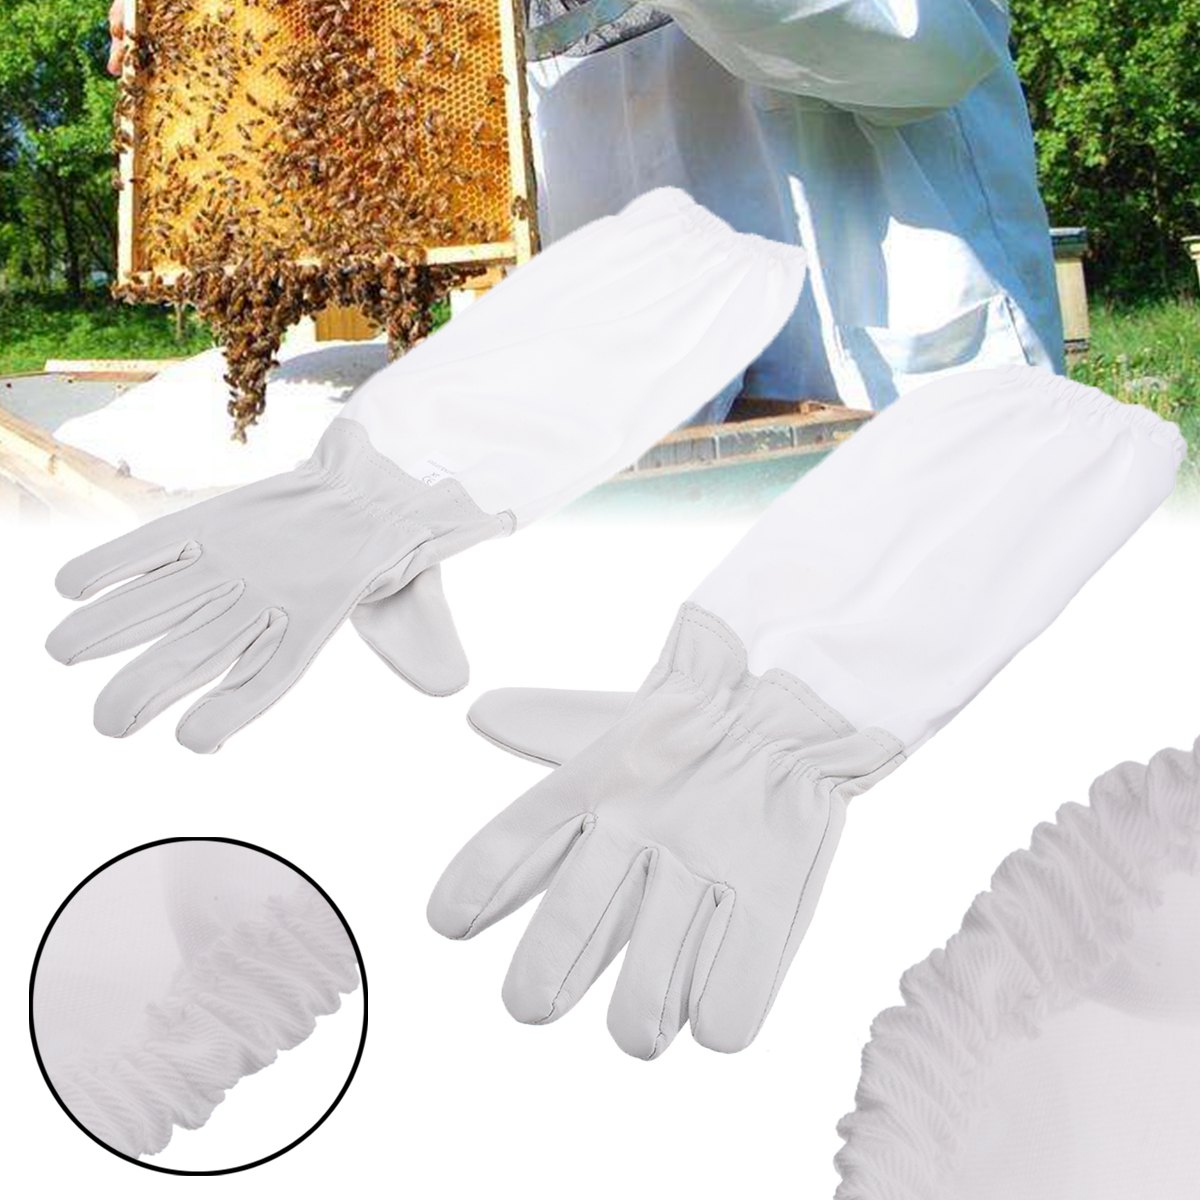 New Large 1 Pair of Beekeeping Protective Gloves with Vented Long Sleeves US